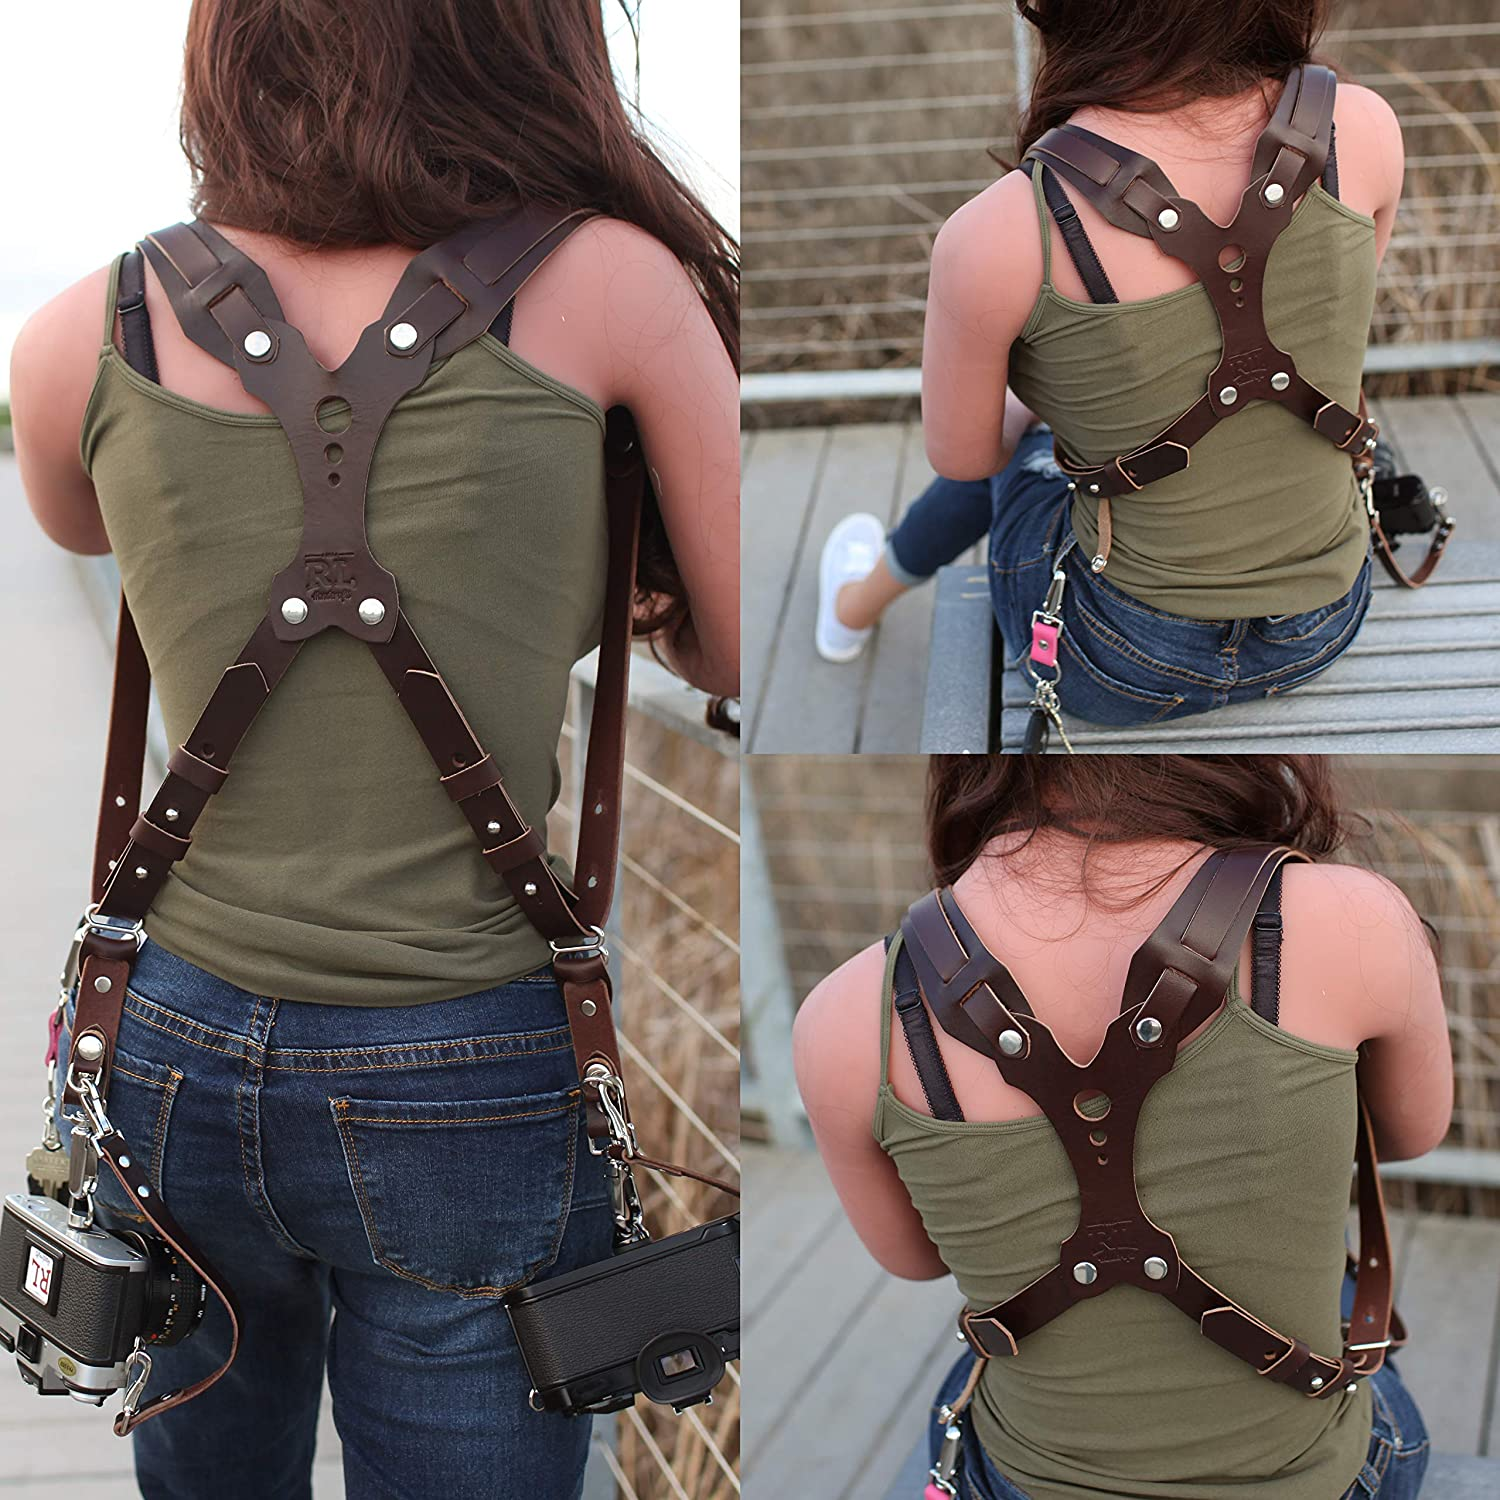 Point /& Shoot Made in The USA Mirrorless DLSR Sling /& Strap RL Handcrafts Clydesdale Lite-Dual Handmade Leather Camera Harness